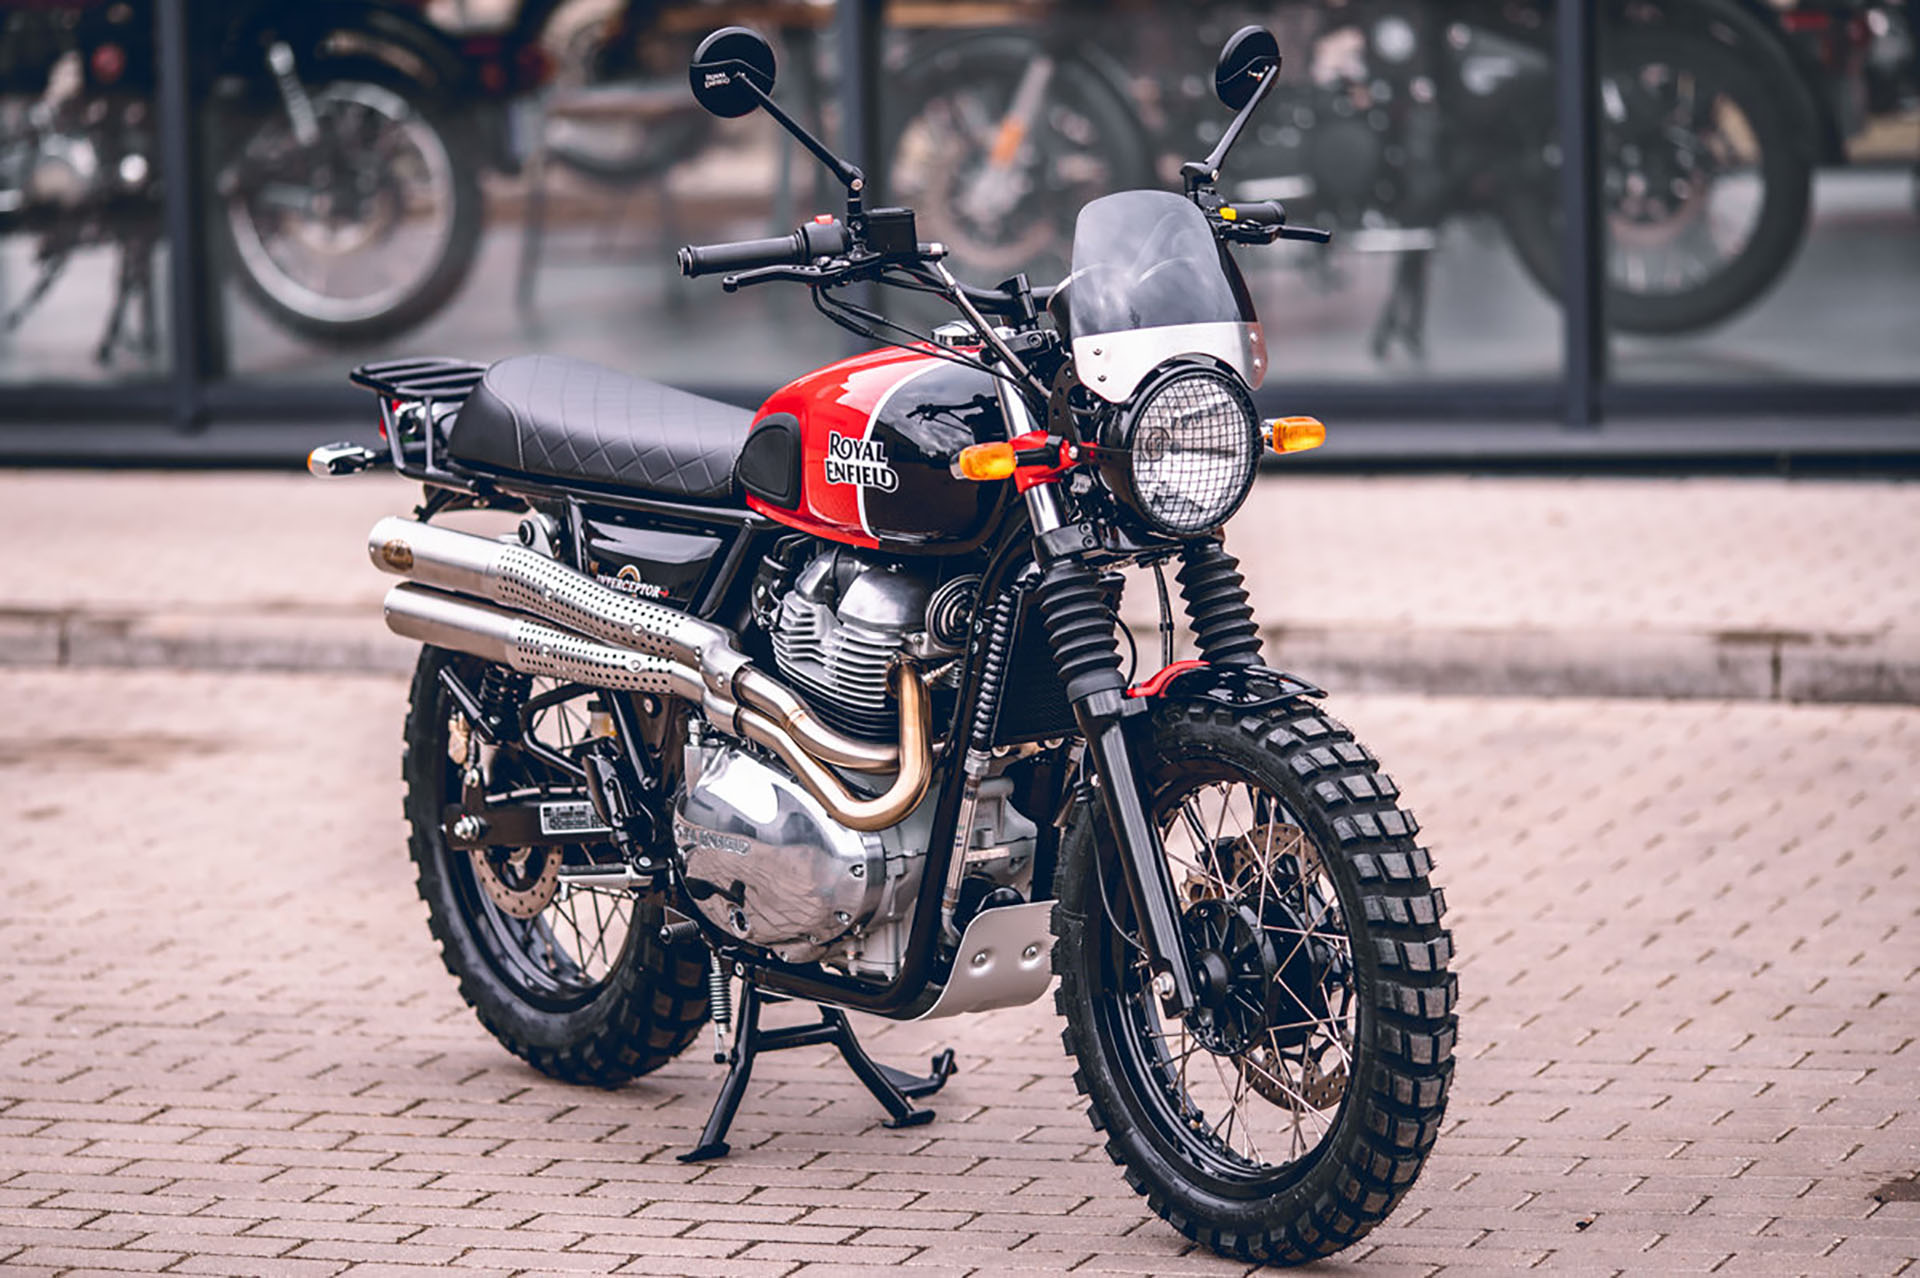 royal-enfield-scrambler-mch-moto-adventure